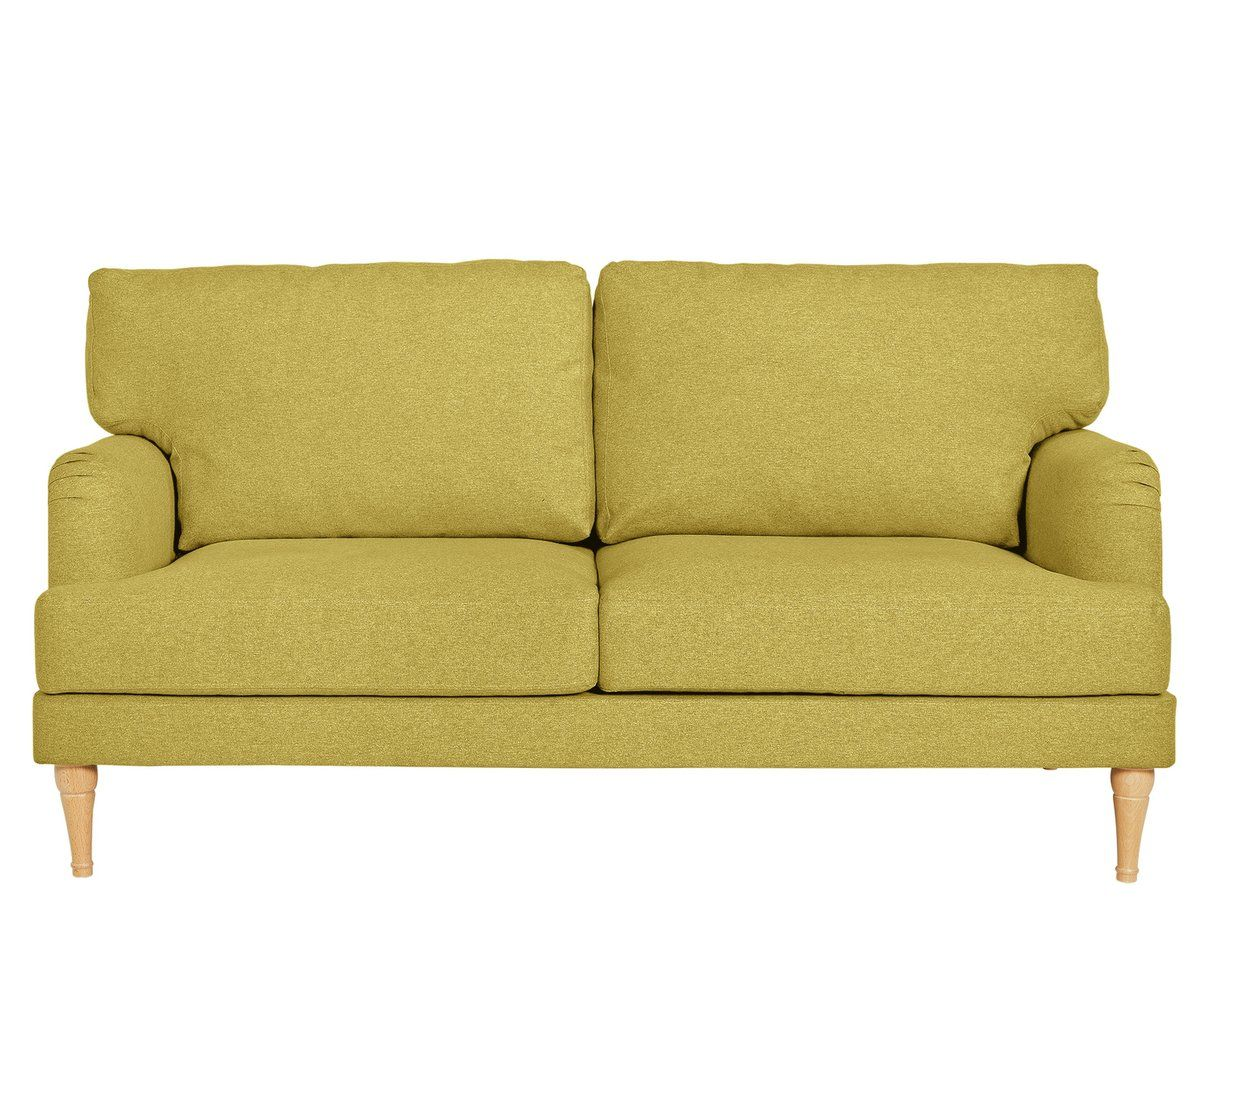 Sofa Settee Argos Argos Home Dune 3 Seater Fabric Sofa Yellow Wishlist In